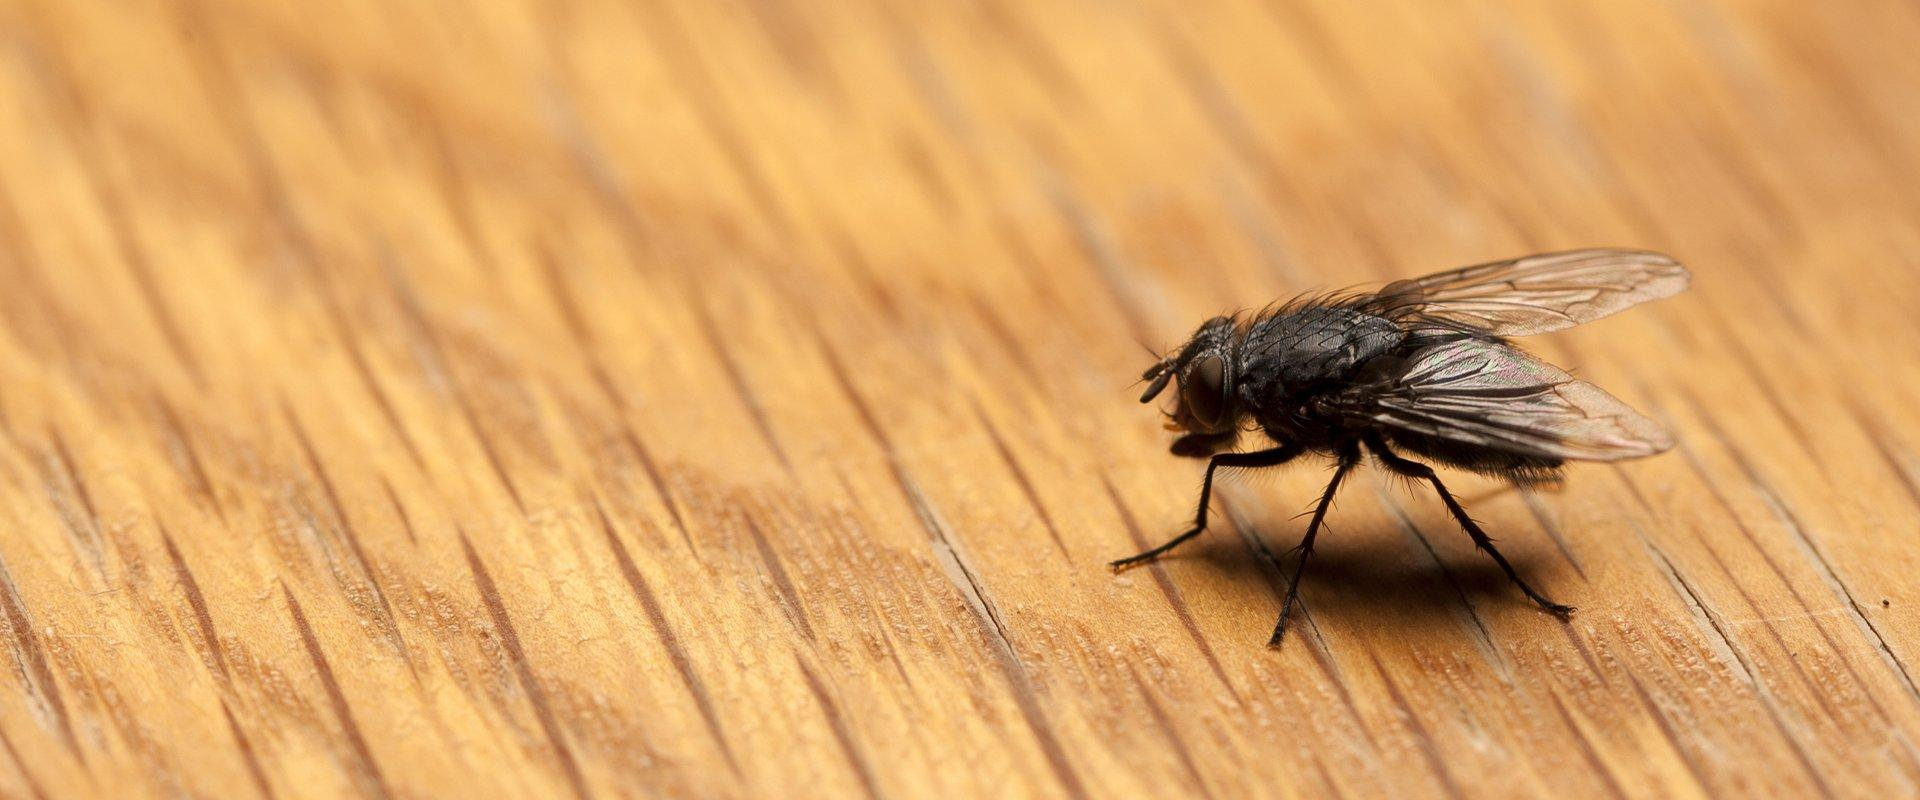 house fly on deck